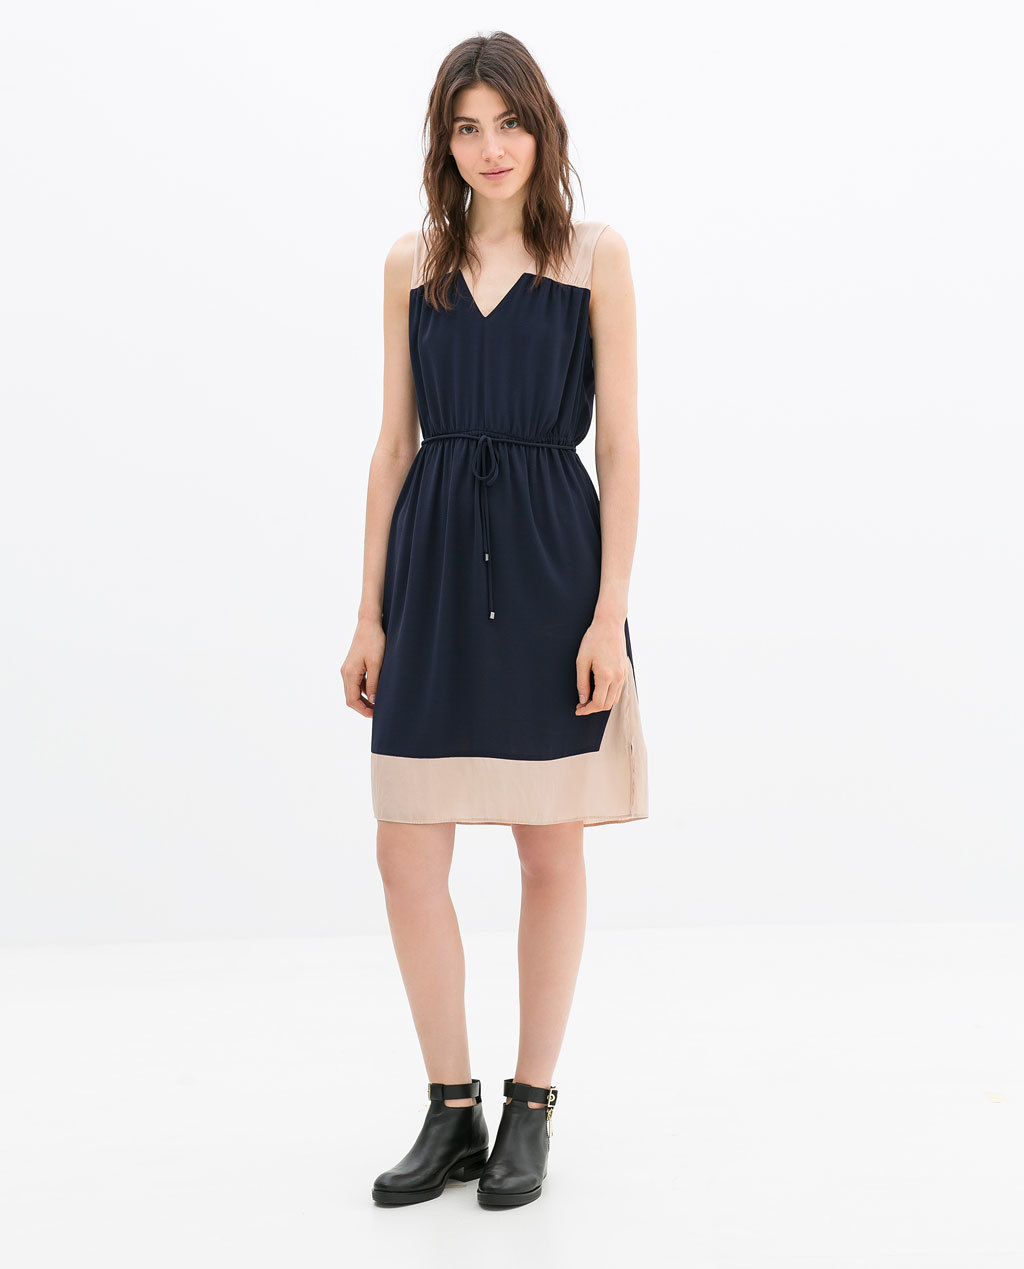 Color Block Dress With Belt - style: shift; neckline: v-neck; fit: fitted at waist; sleeve style: sleeveless; waist detail: belted waist/tie at waist/drawstring; predominant colour: navy; secondary colour: nude; occasions: casual, creative work; length: just above the knee; fibres: polyester/polyamide - stretch; sleeve length: sleeveless; pattern type: fabric; pattern size: standard; pattern: colourblock; texture group: other - light to midweight; season: a/w 2014; wardrobe: highlight; embellishment: contrast fabric; embellishment location: hem, shoulder